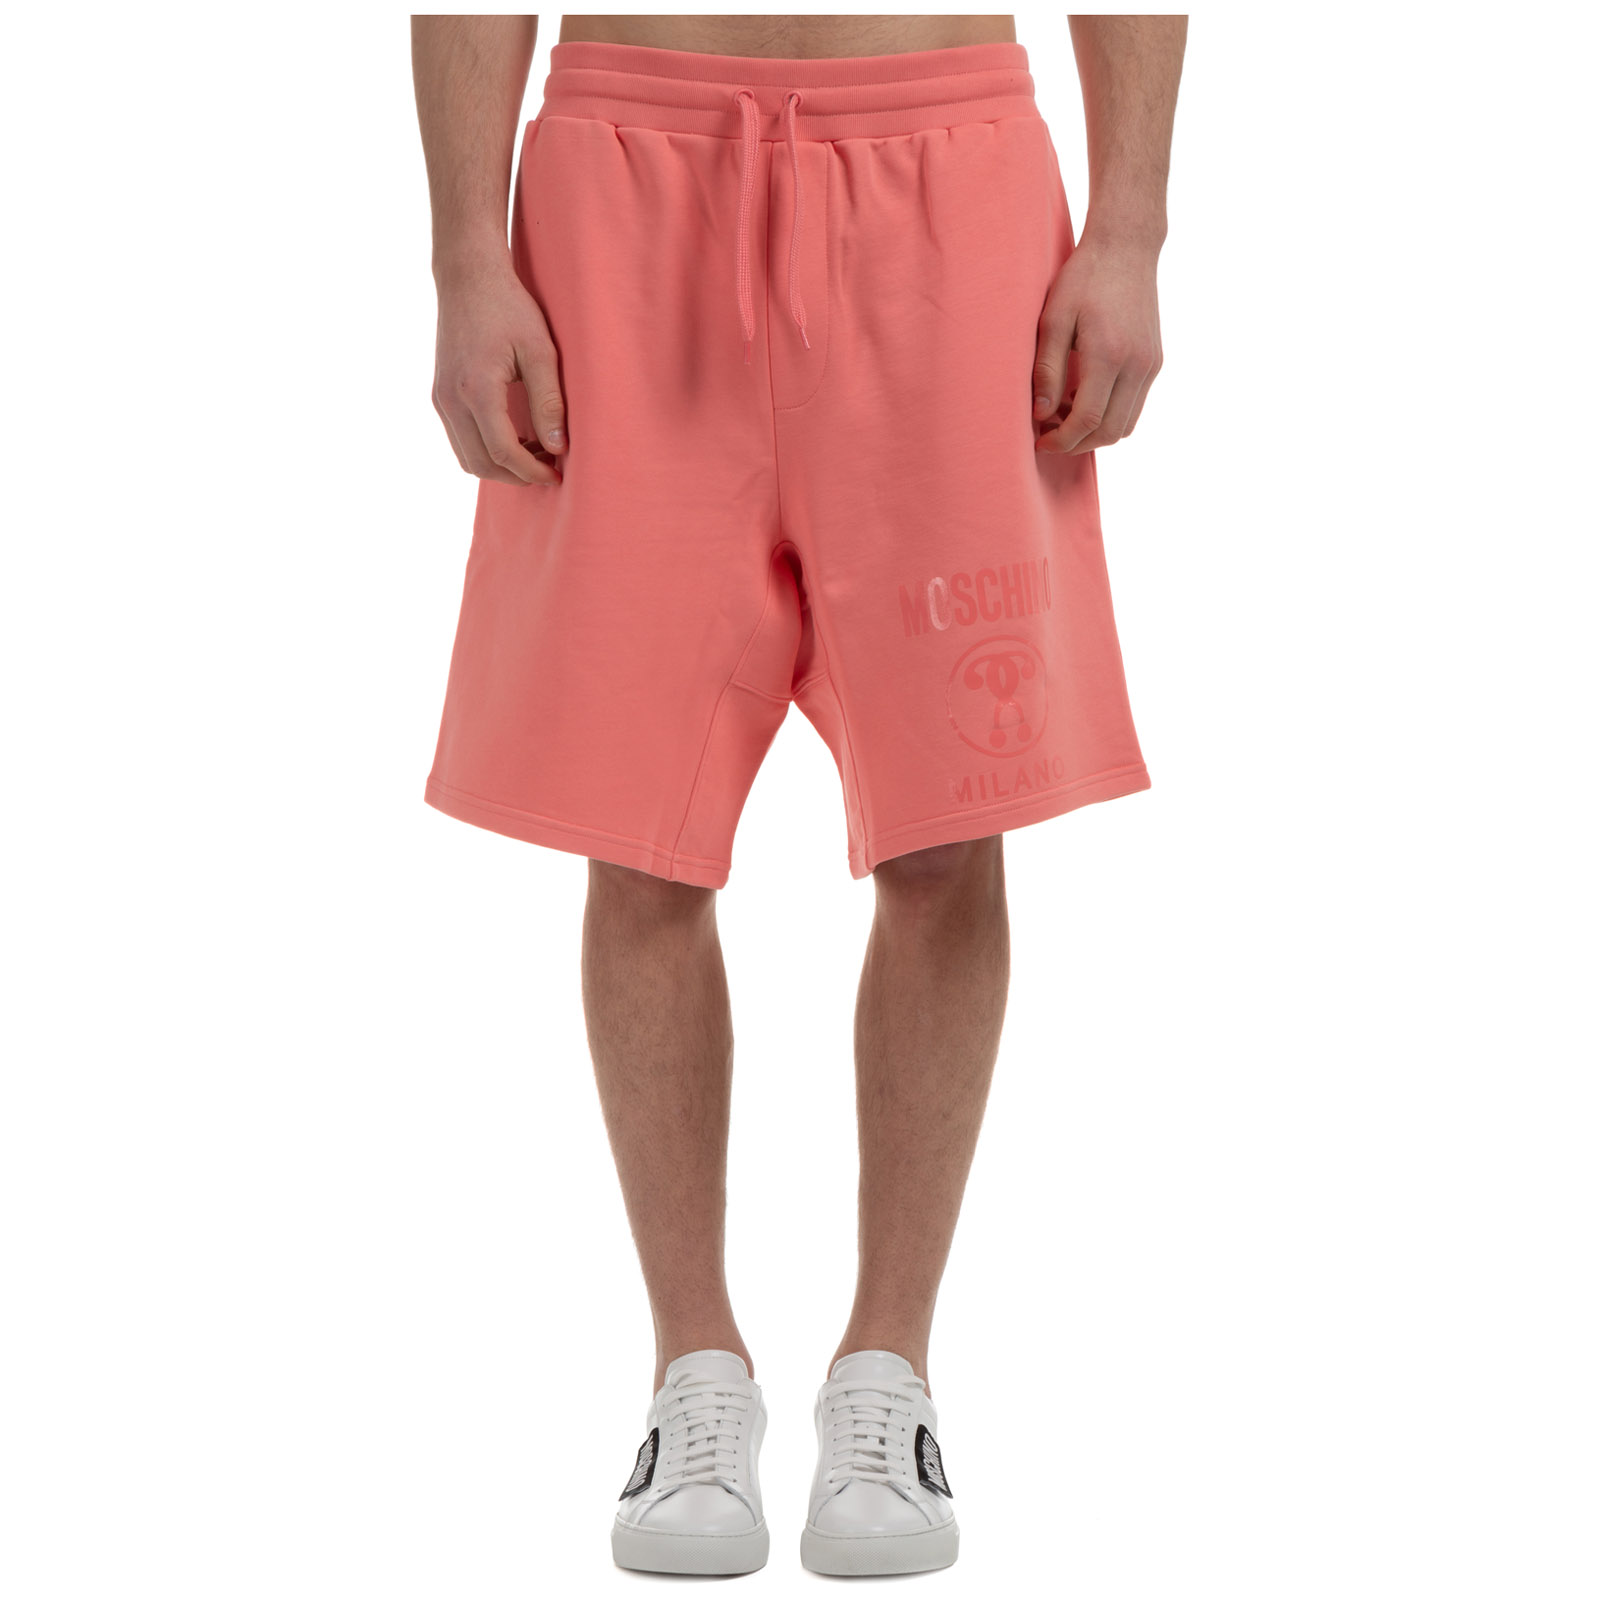 Moschino MEN'S SHORTS BERMUDA DOUBLE QUESTION MARK SLIM FIT